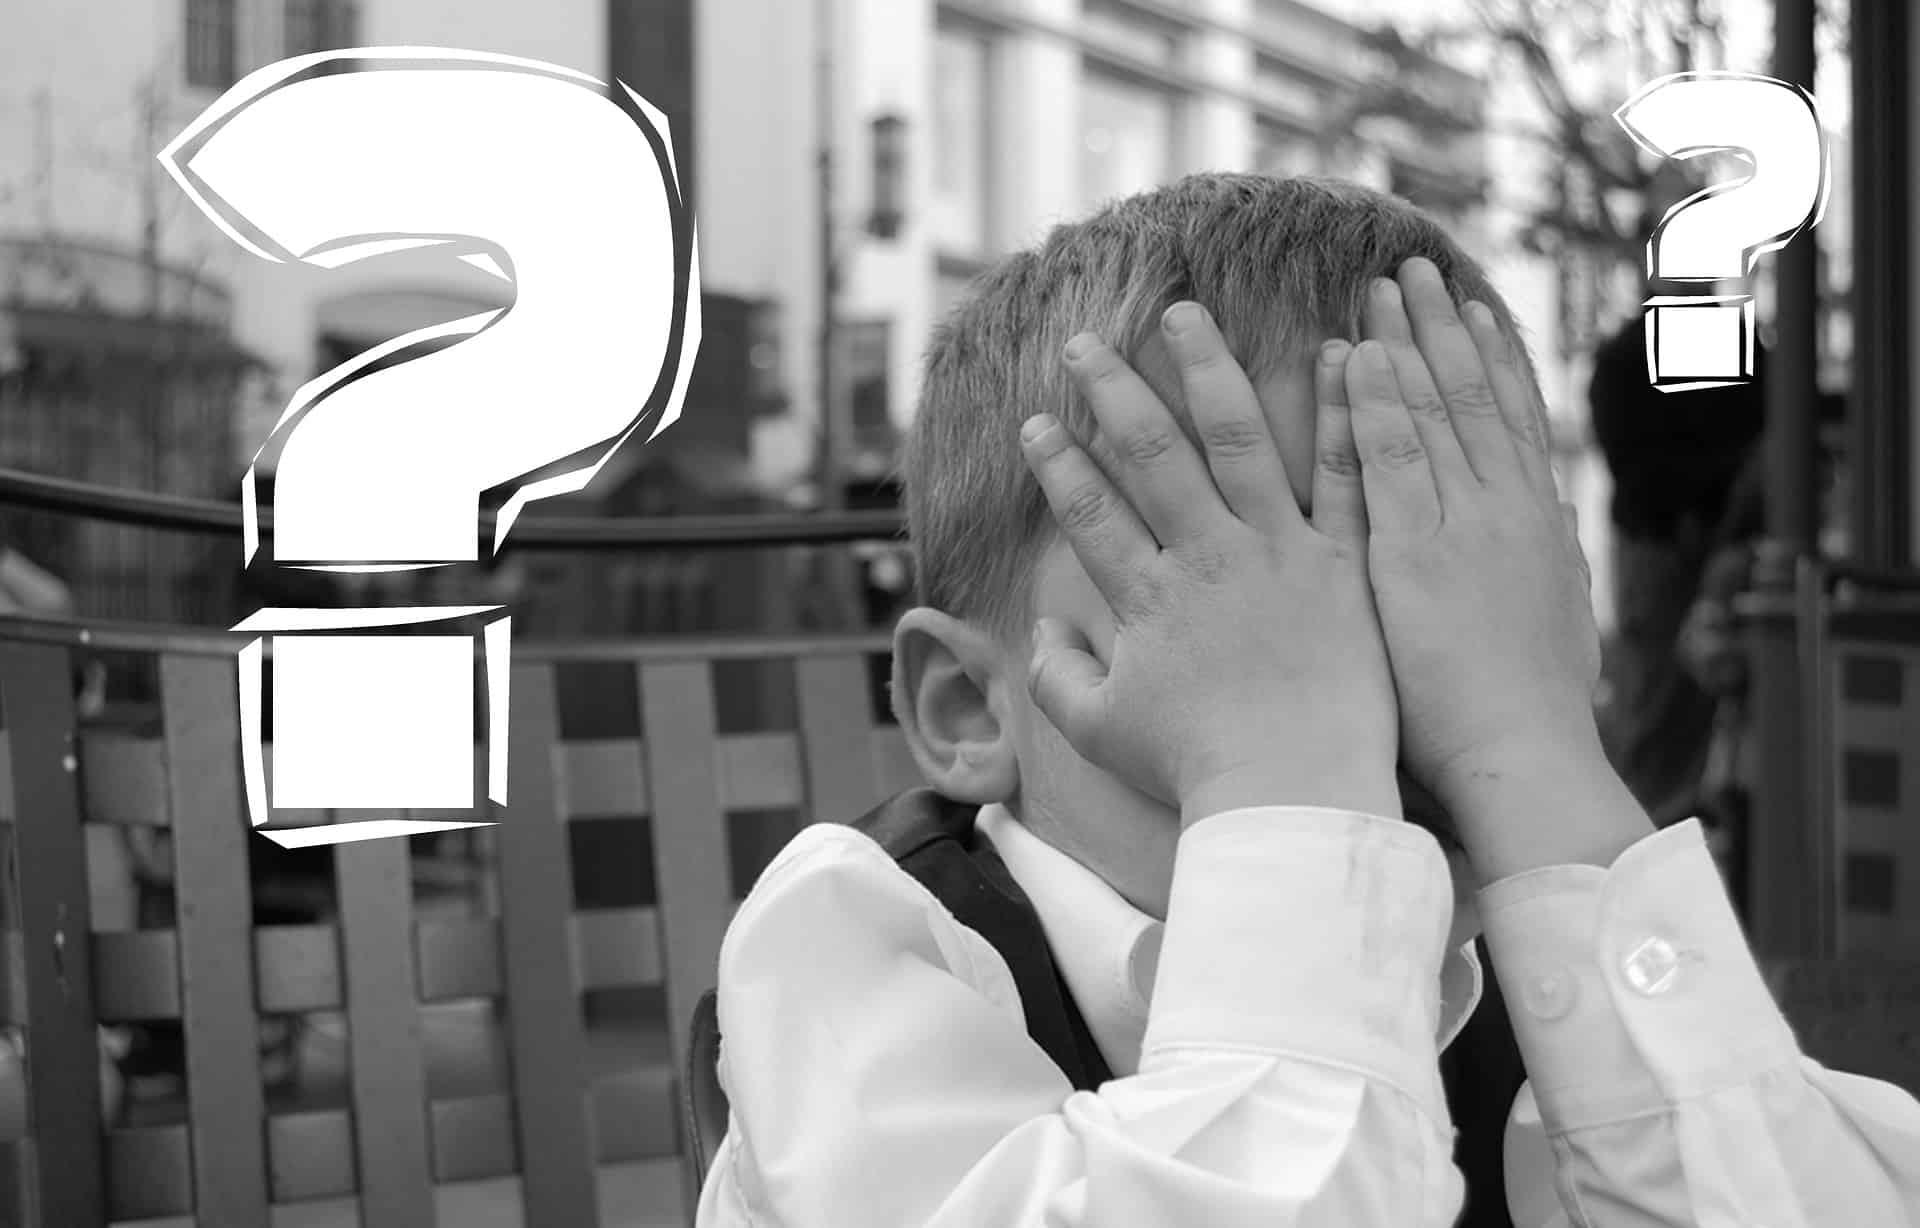 8 Questions From Your Kids You Don't Want To Answer